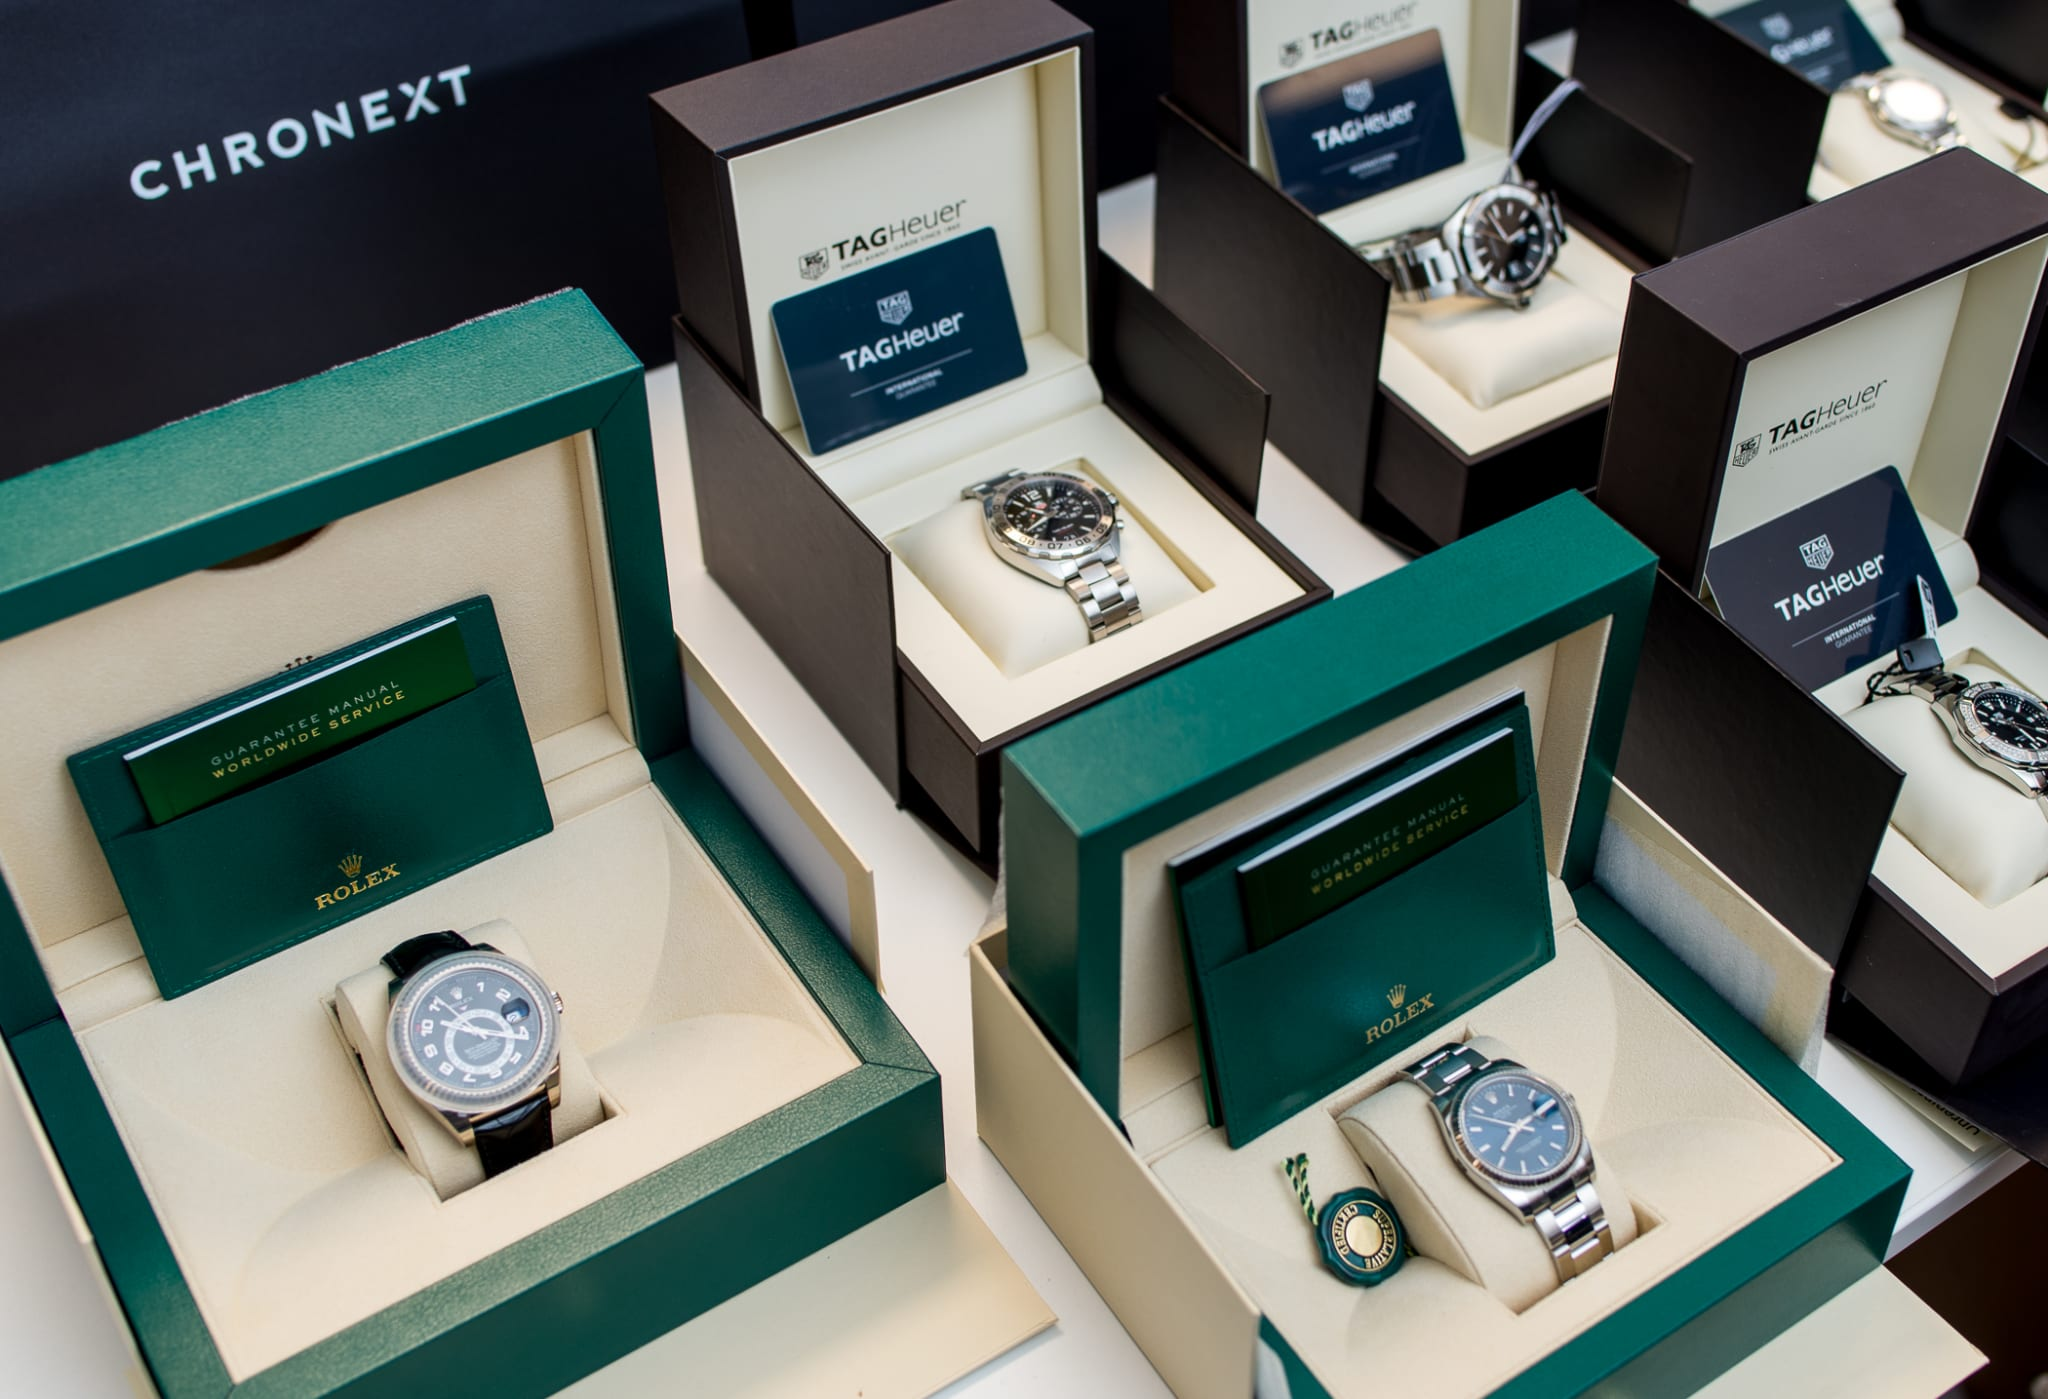 19d574187c1c5 Prices for hottest Rolex models are falling fast says secondary market  specialist